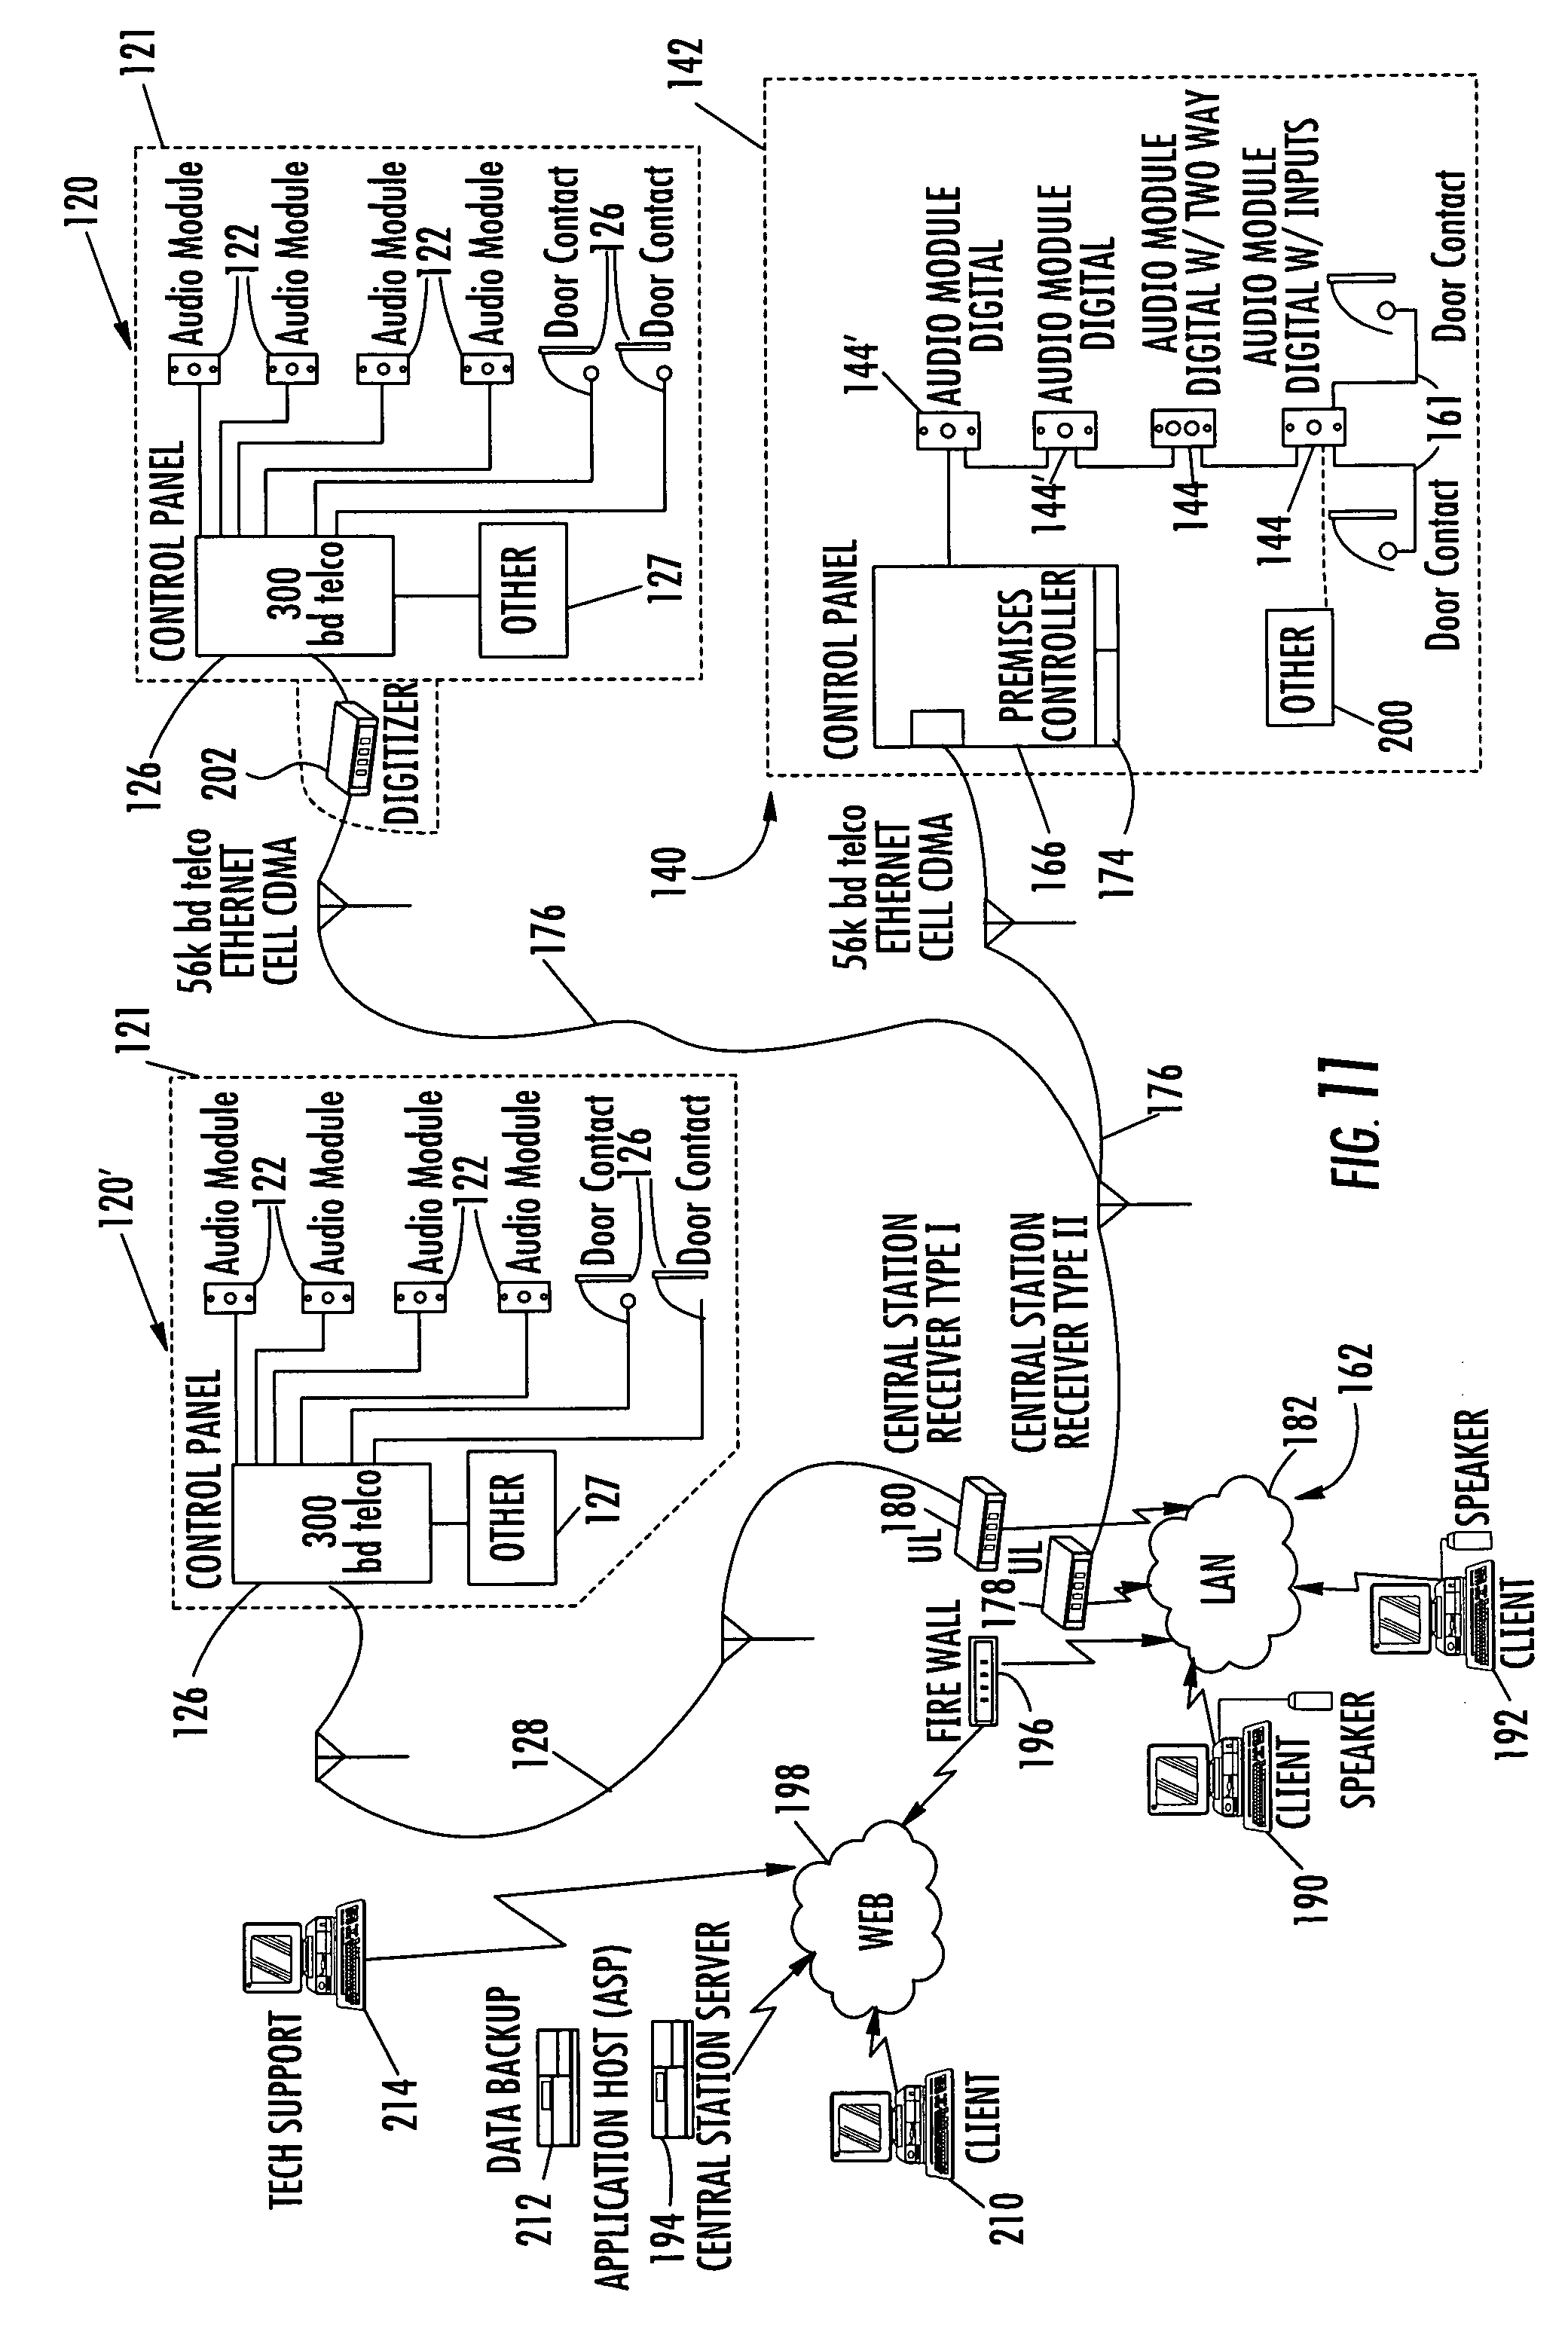 US20090058630A1 20090305 D00013 patent us20090058630 system and method for monitoring security sonitrol alarm wiring diagram at bakdesigns.co